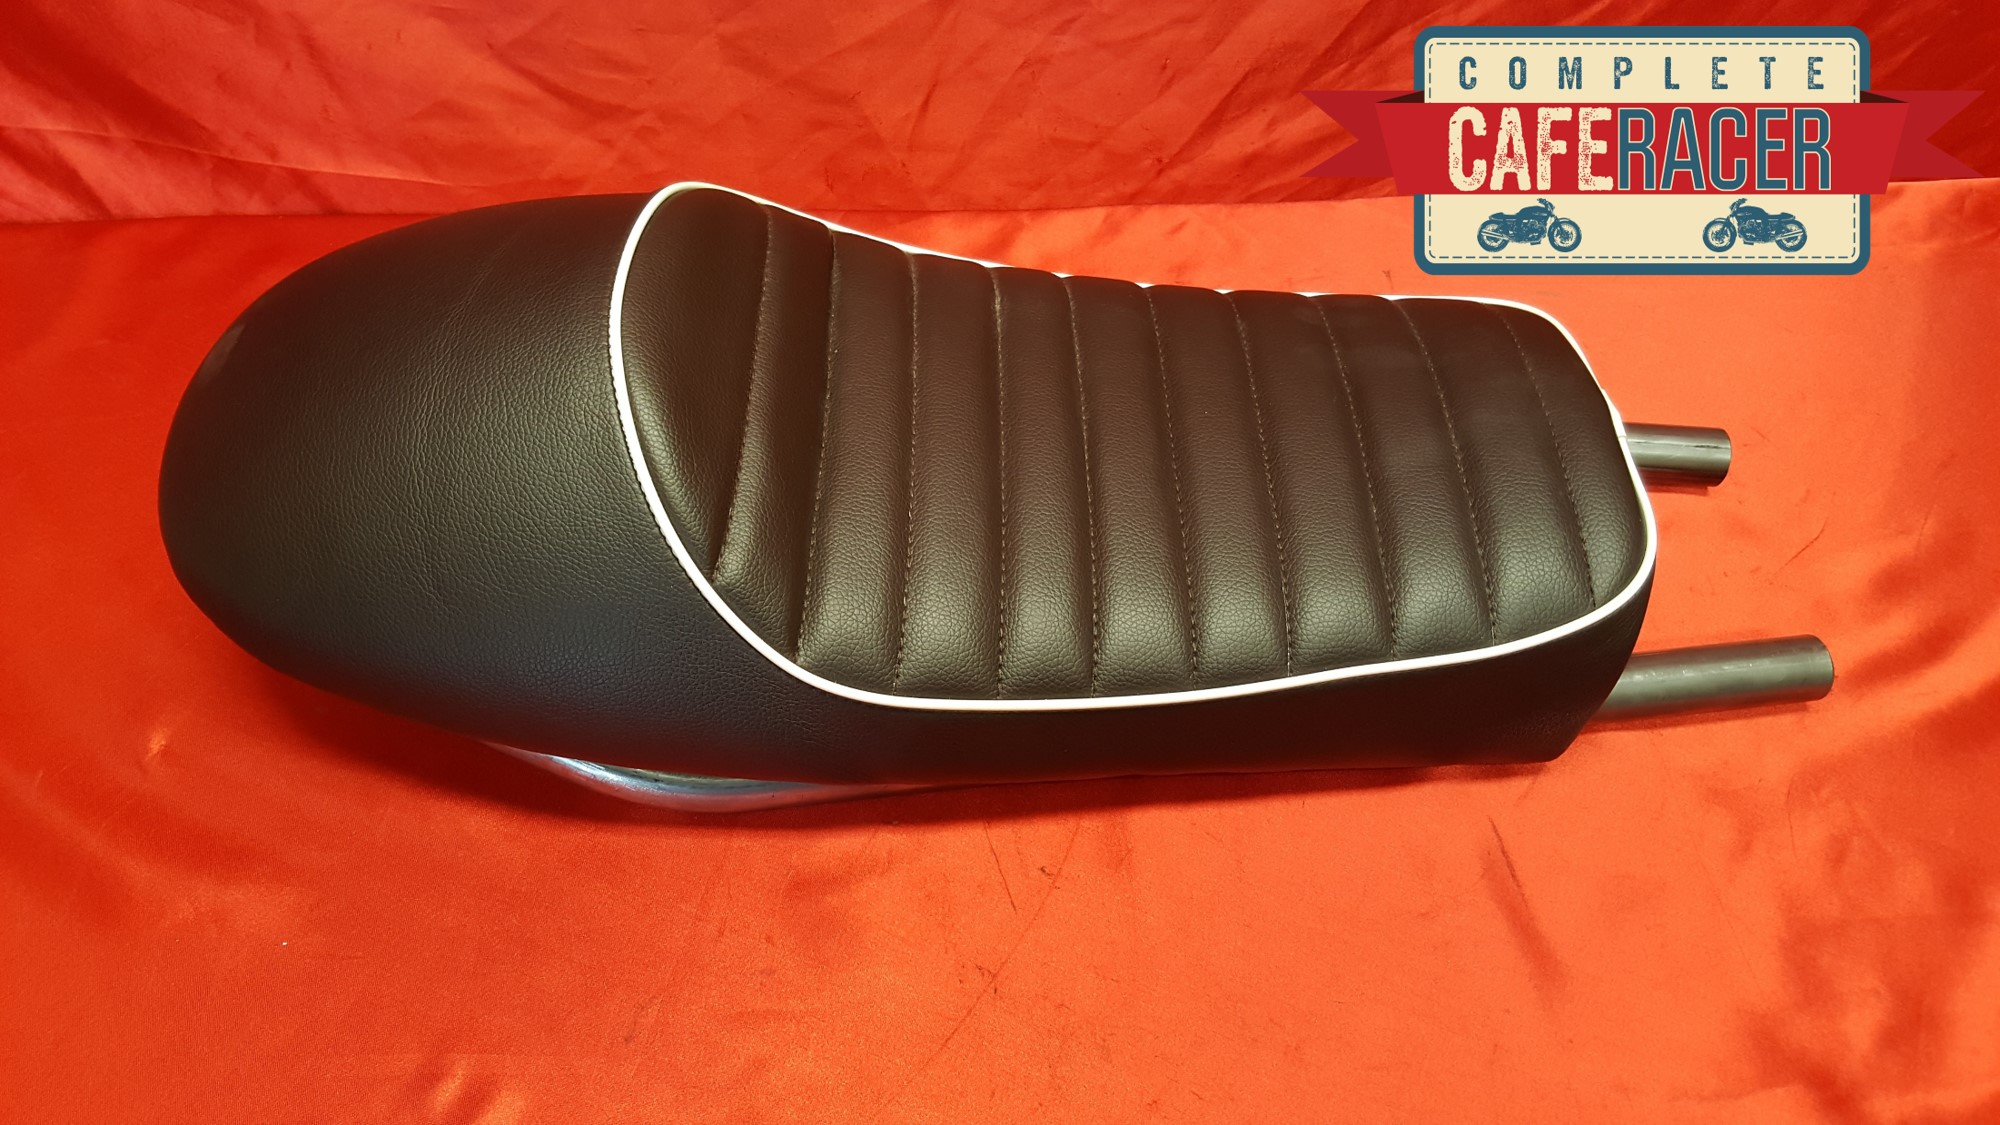 (LS12) CAFE RACER FLAT TRACKER BRAT SEAT FINISHED IN CHOCOLATE BROWN LEATHERETTE WITH STEEL SEAT HOOP